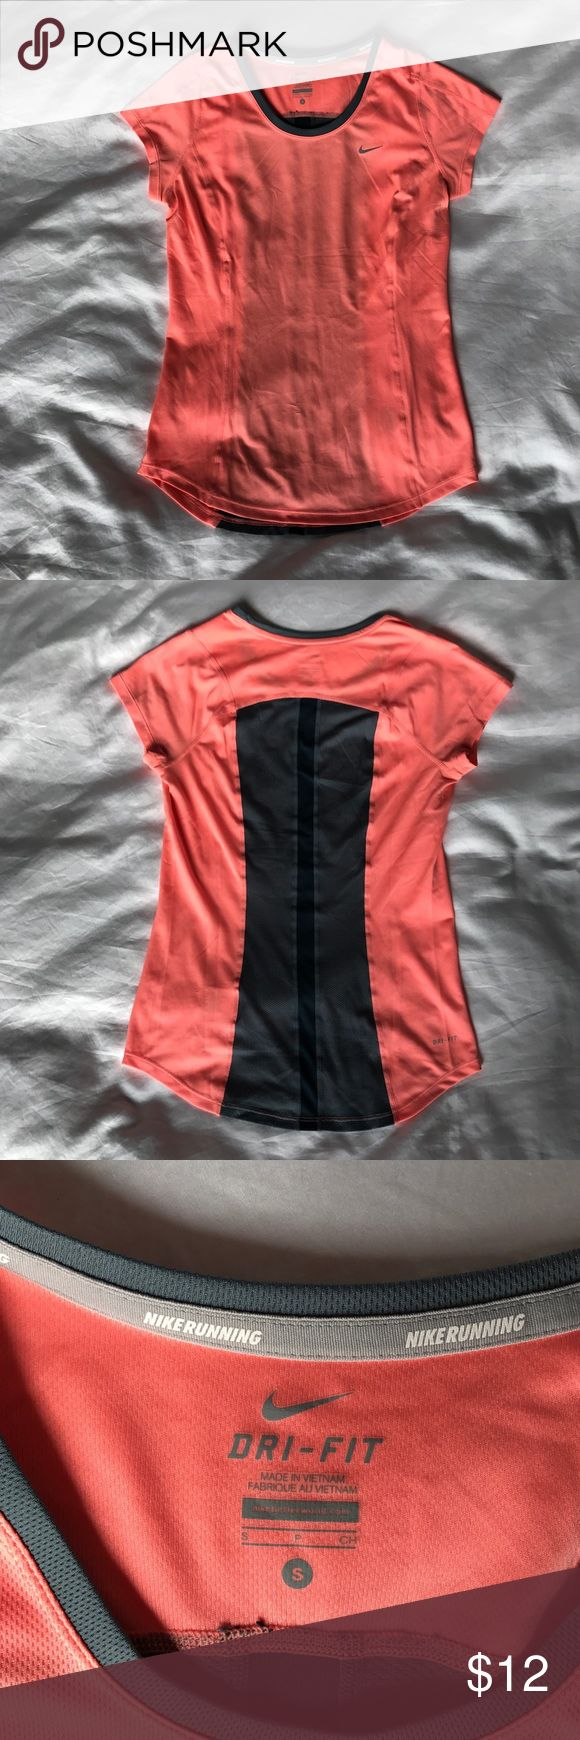 Nike Running DRI-FIT Shirt Very flattering Nike running t-shirt. Color is peach/pink and gray. Panel design for custom fit and mobility. Back wicking mesh panel in gray. Very small snags on front. Size Small. Nike Tops Tees - Short Sleeve